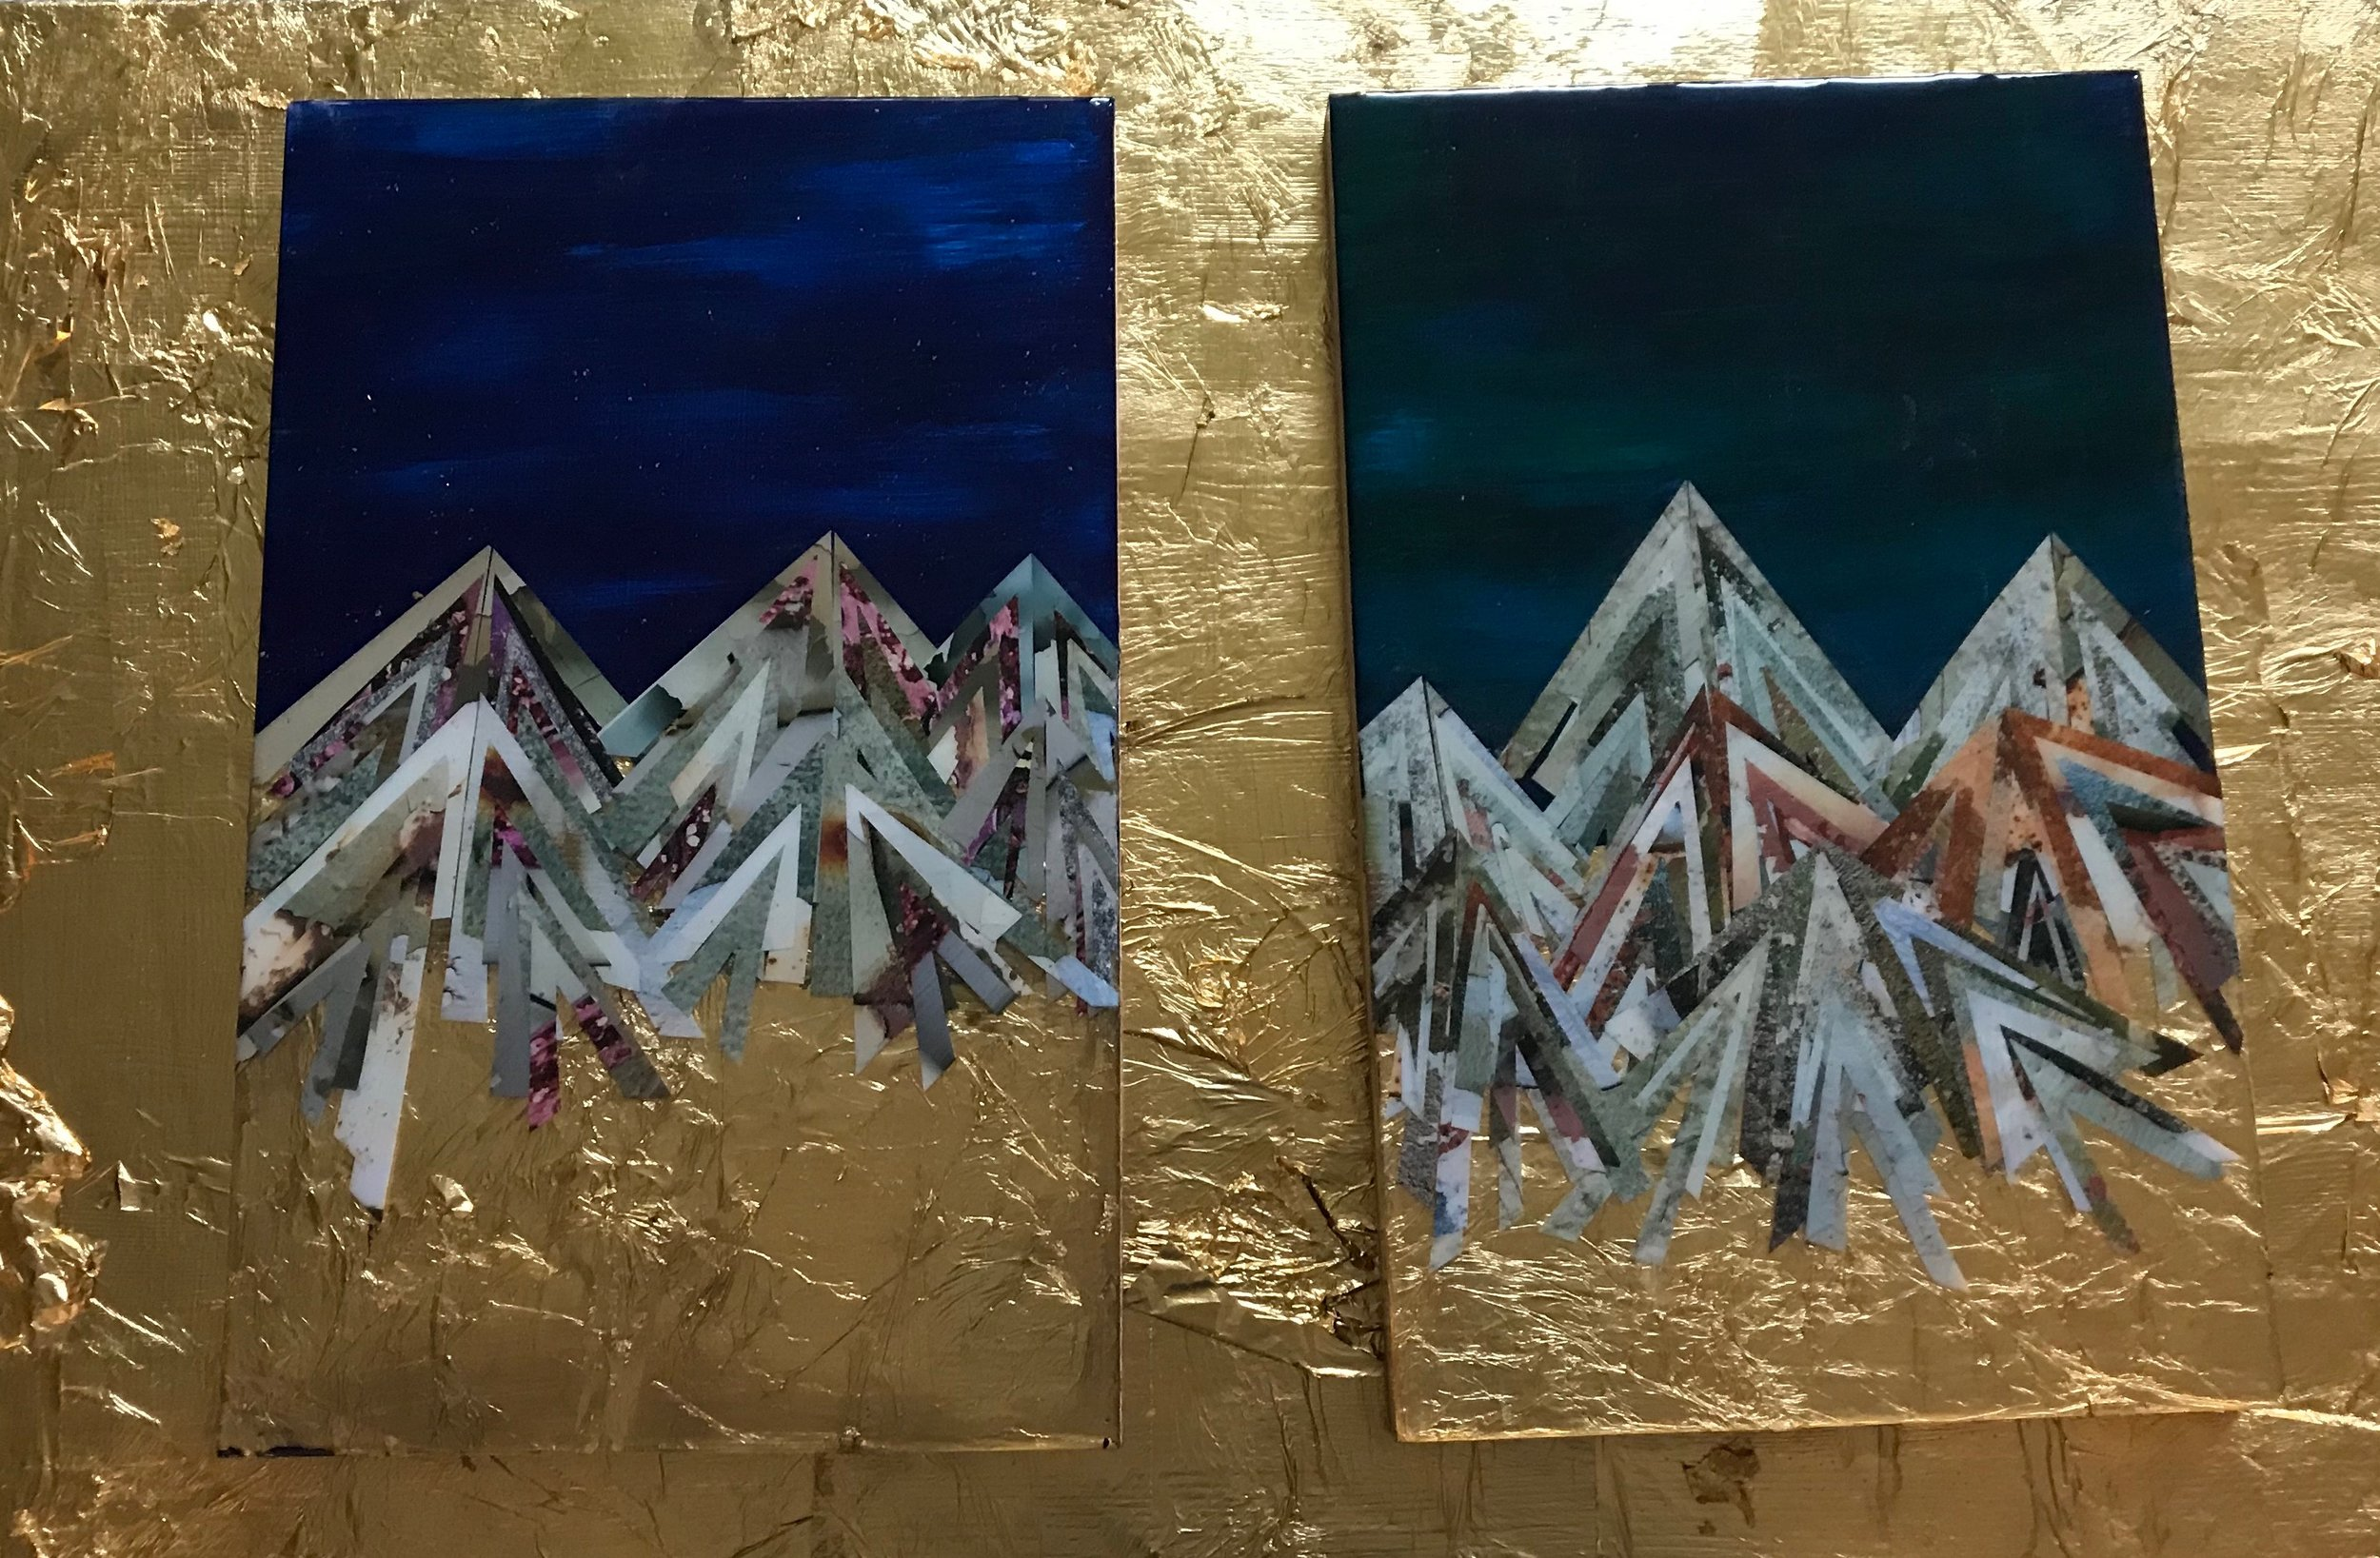 A Twin Set of Golden Mountainscapes 2019